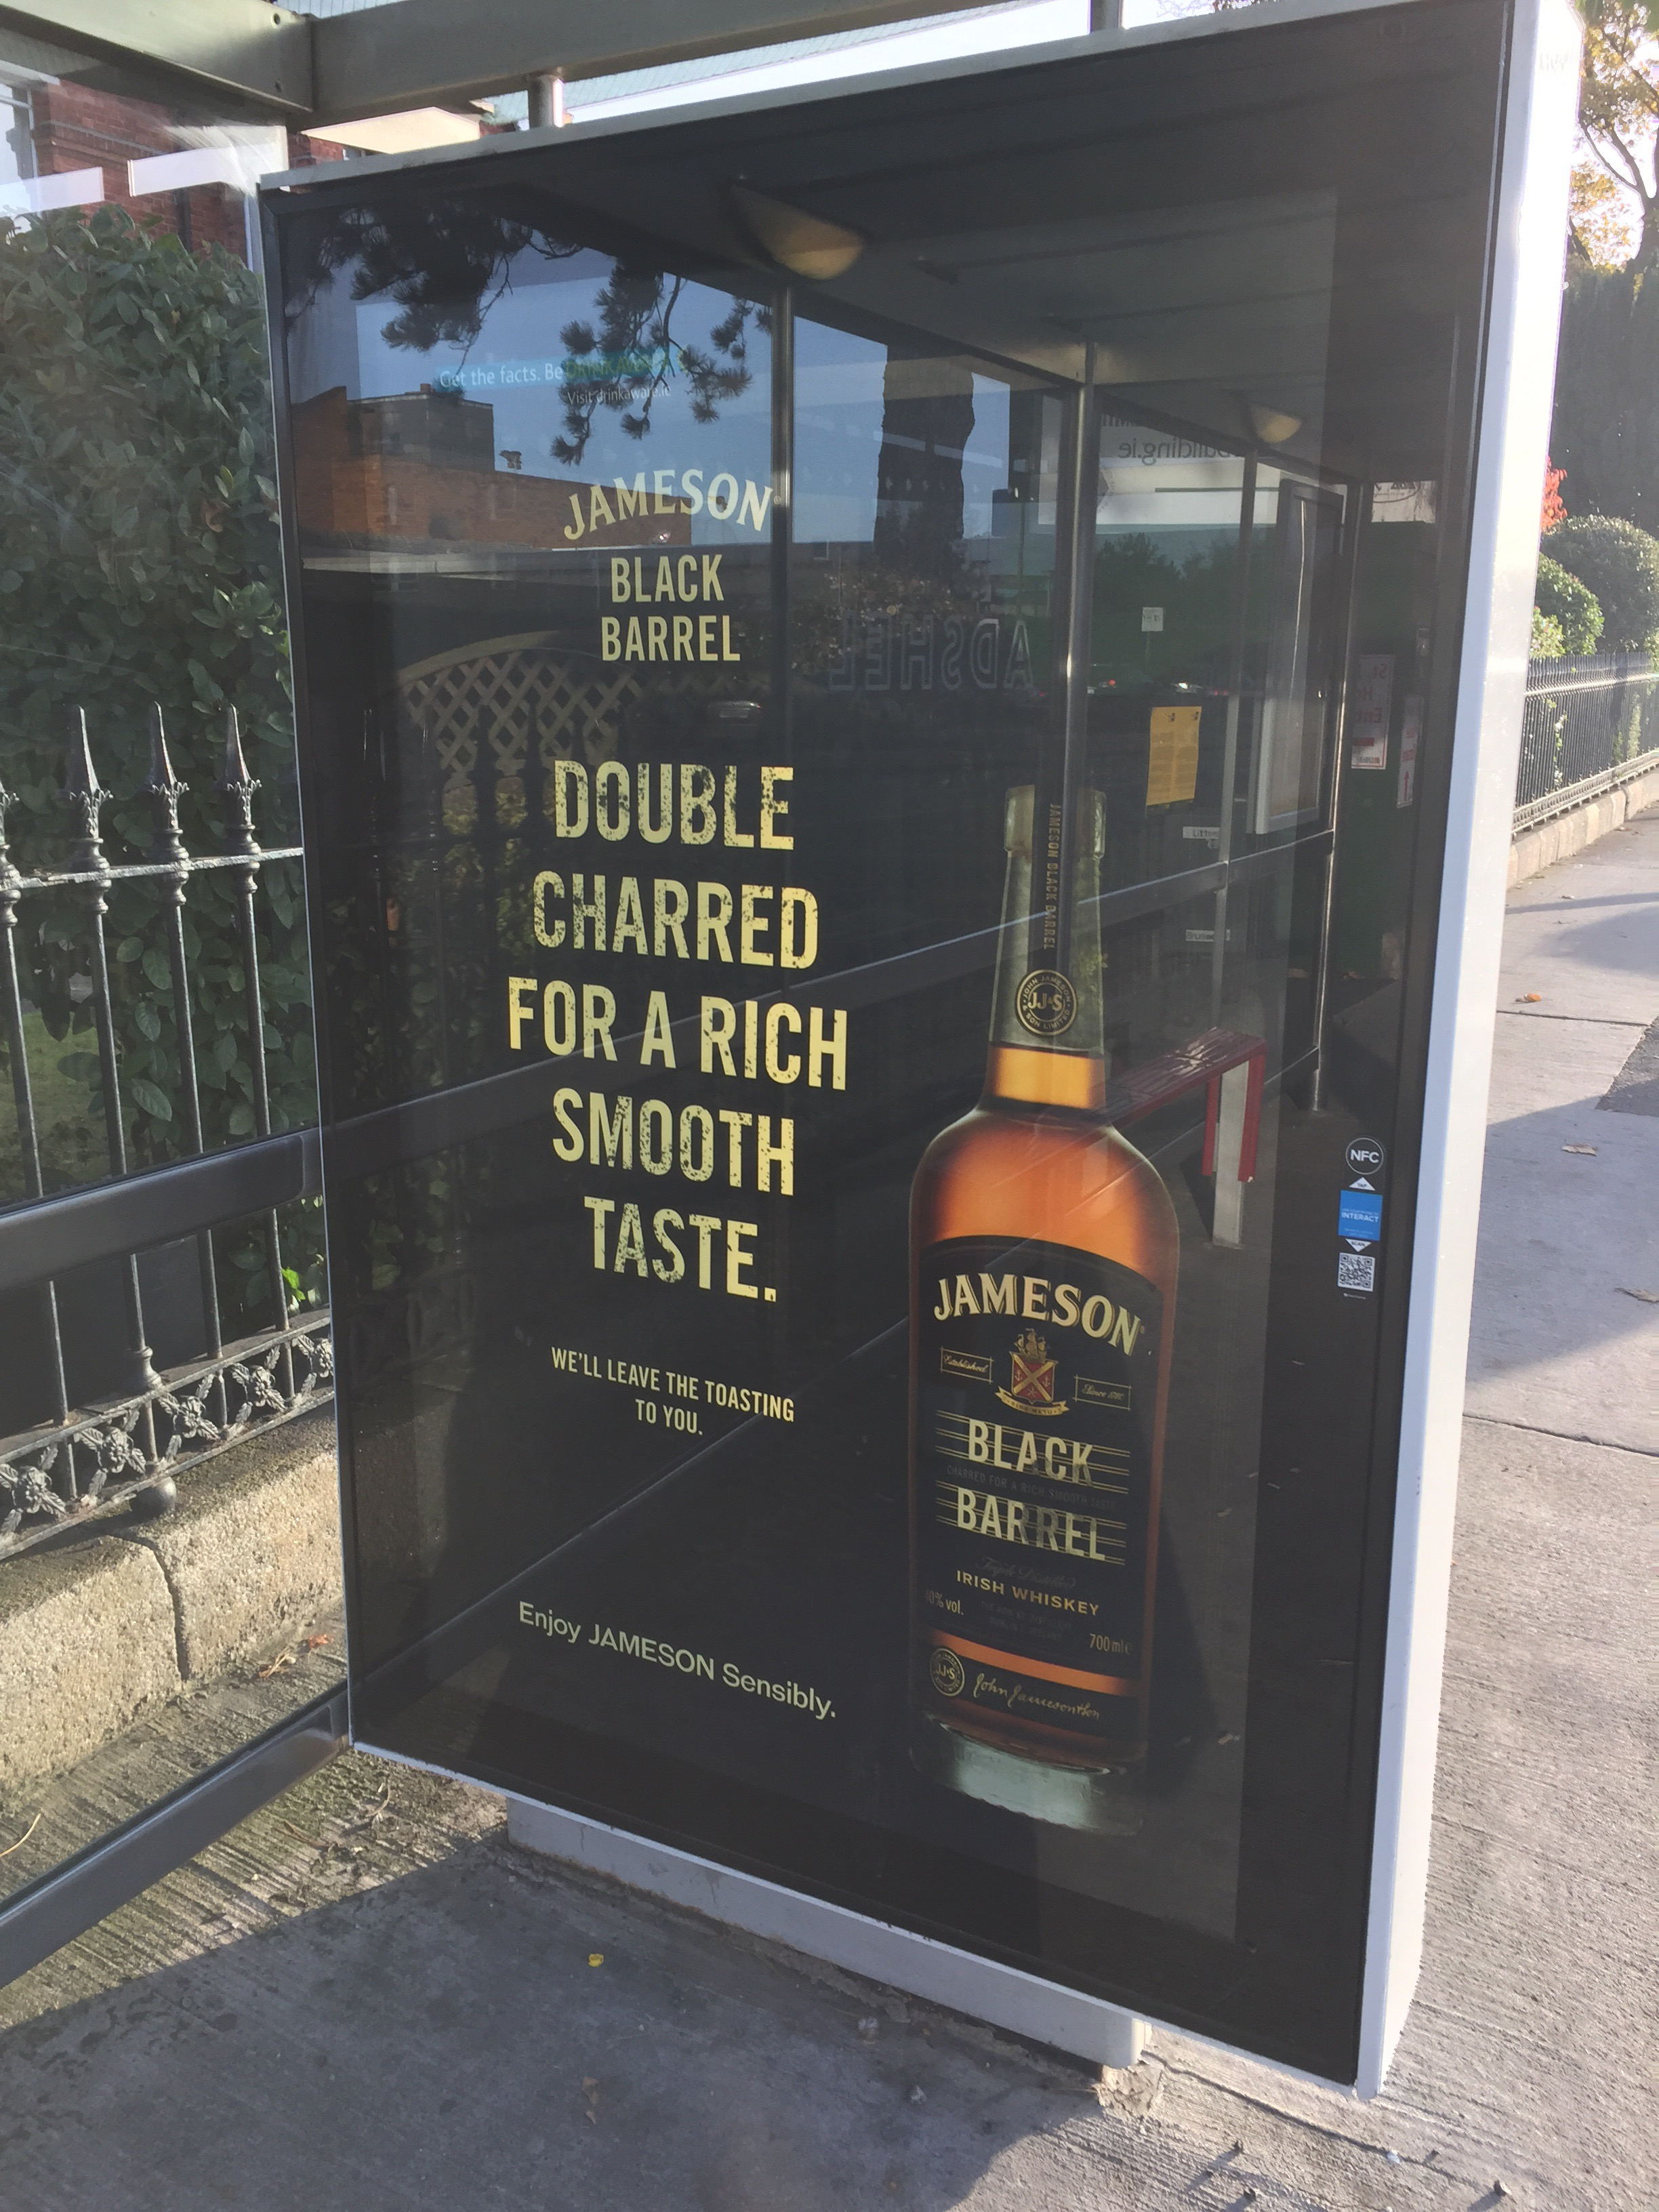 Jameson black barrell – double charred for a rich smooth taste